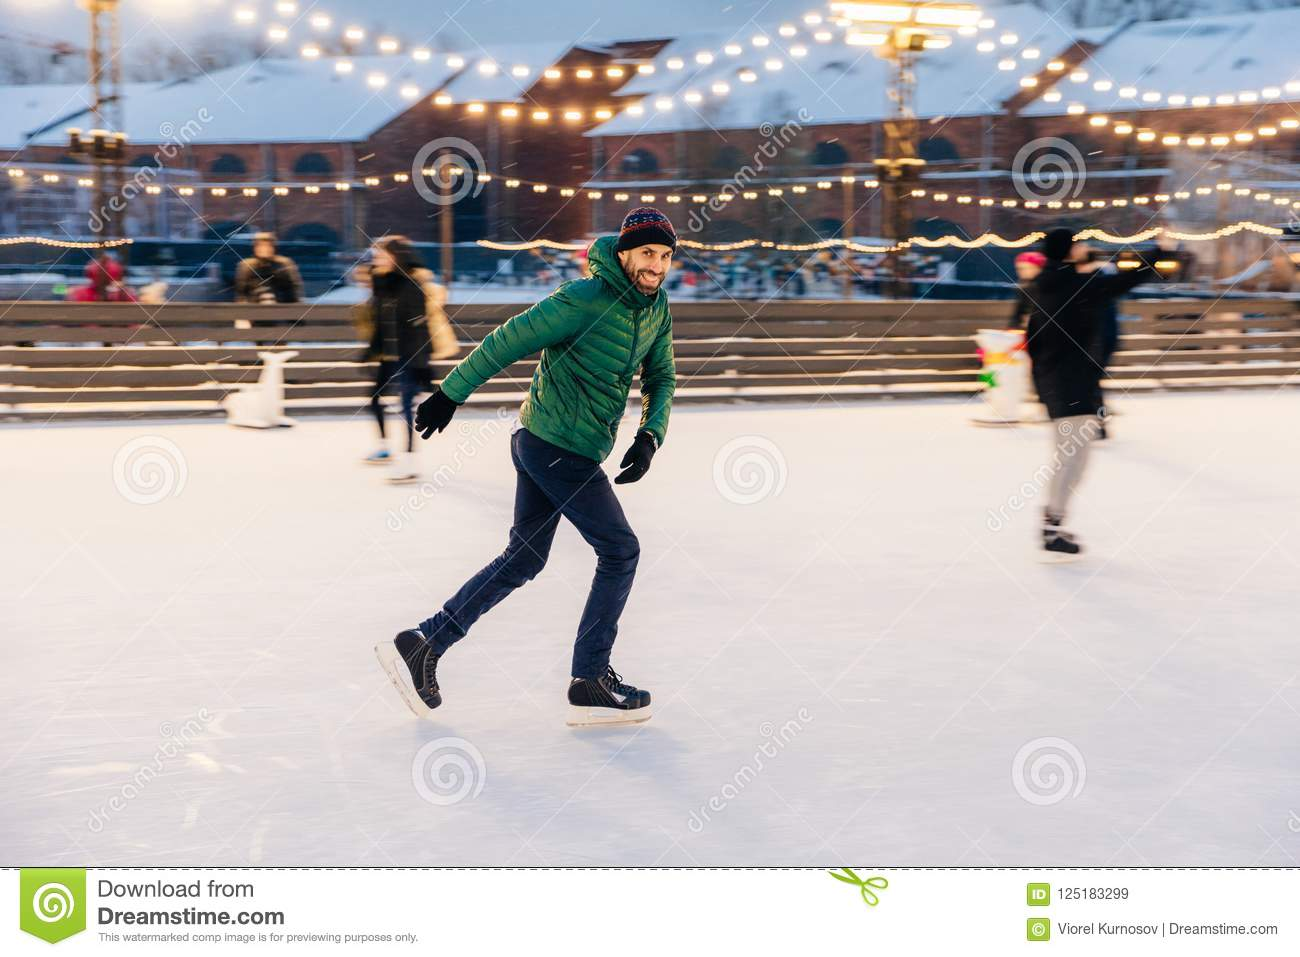 Joyful bearded man practices going skating on ice ring, has cheerful expression, smiles happily, demontrates his professionalism.